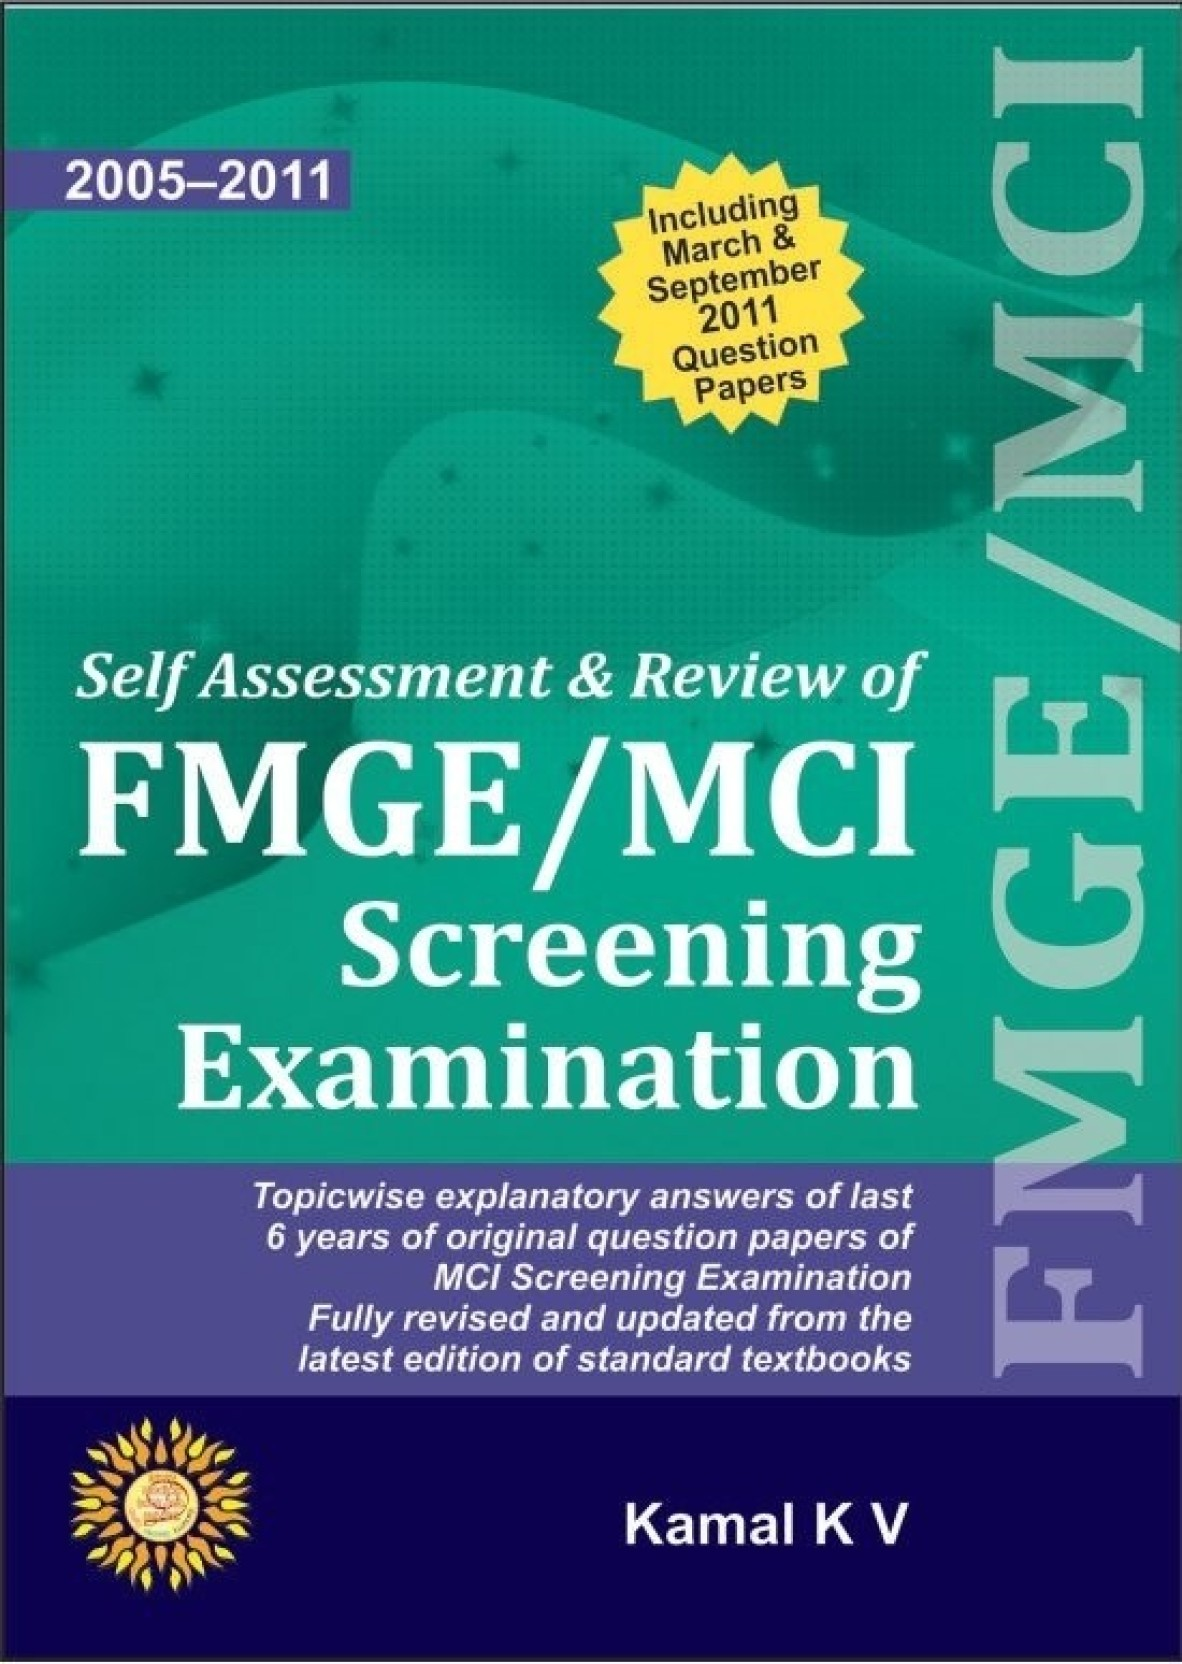 Self Assessment and Review of FMGE / MCI Screening